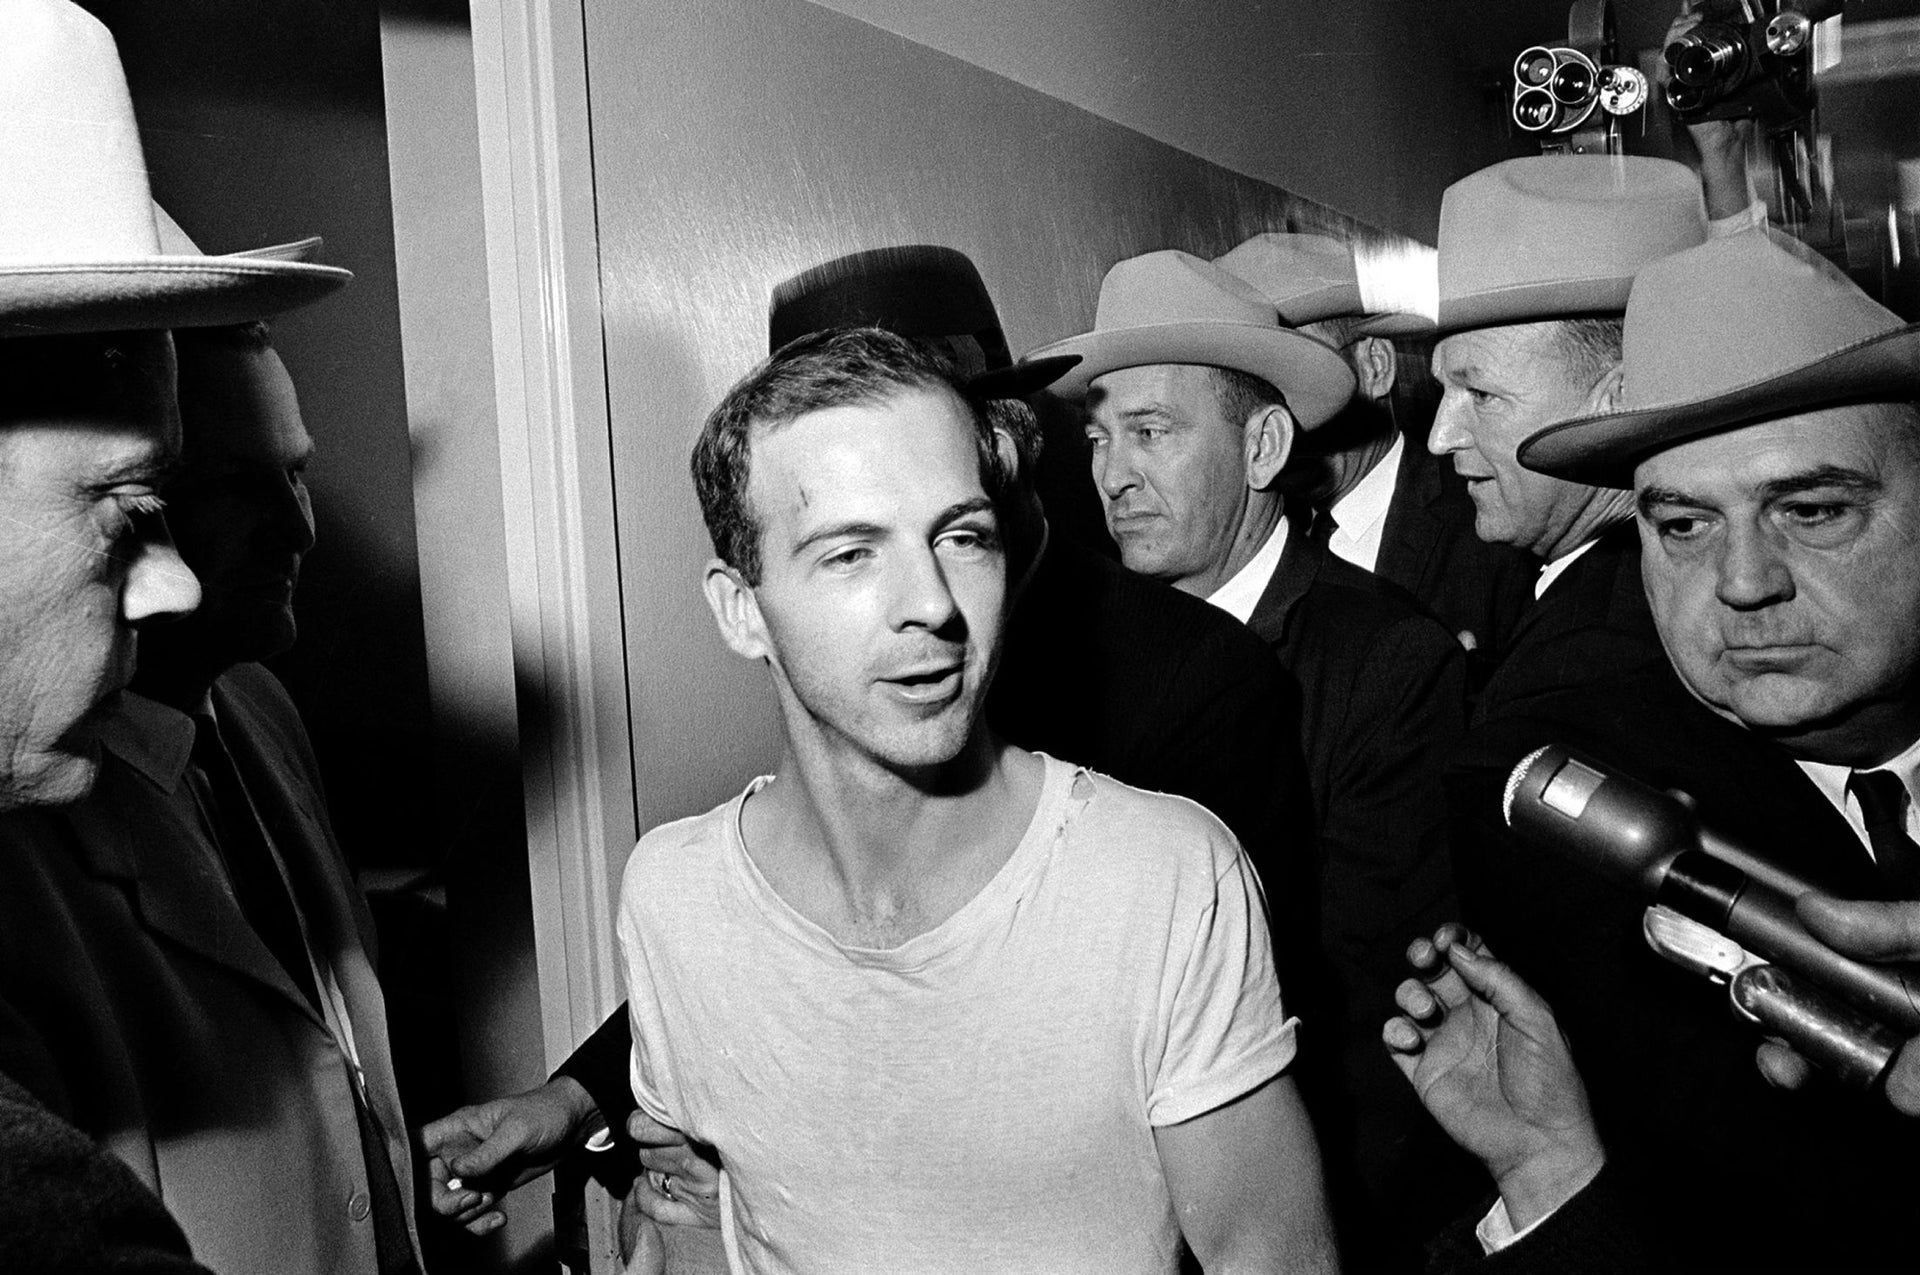 FILE - In this Nov. 23, 1963, file photo, surrounded by detectives, Lee Harvey Oswald talks to the media as he is led down a corridor of the Dallas police station for another round of questioning in connection with the assassination of U.S. President John F. Kennedy. President Donald Trump is caught in a push-pull on new details of Kennedyג€™s assassination, jammed between students of the killing who want every scrap of information and intelligence agencies that are said to be counseling restraint.  How that plays out should be known on Oct. 26, 2017, when long-secret files are expected to be released. (AP Photo)